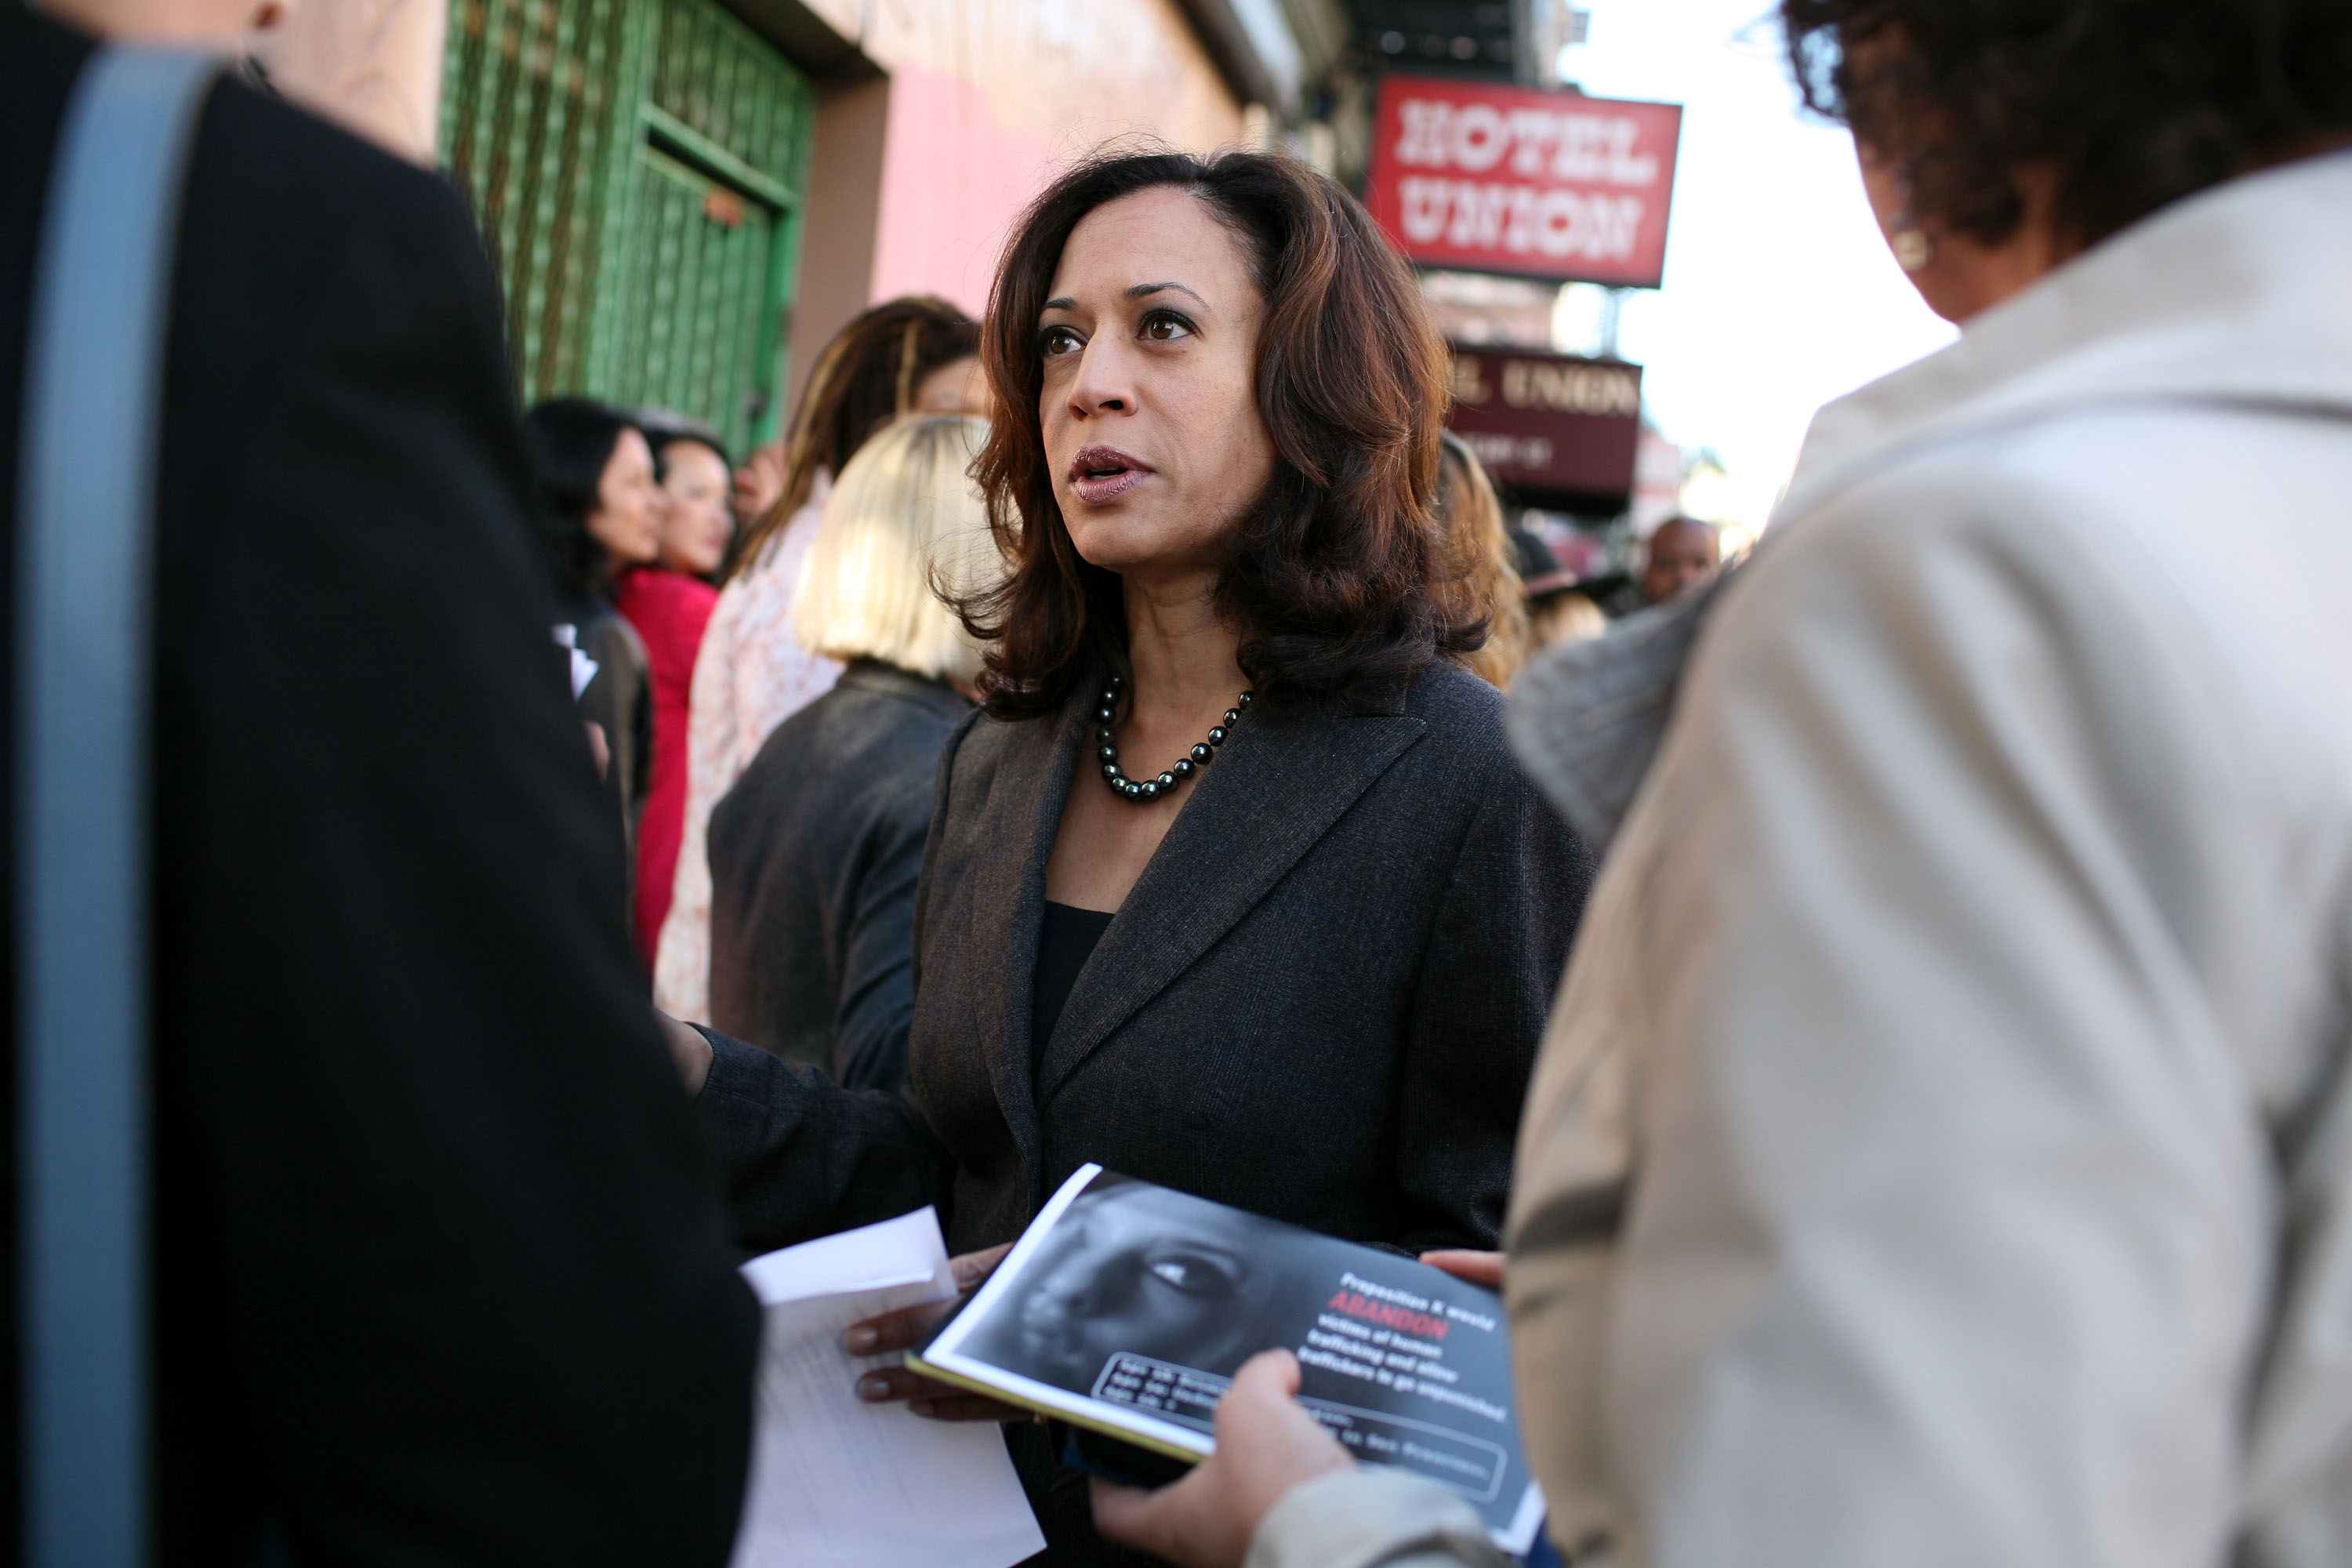 Kamala Harris, then district attorney of San Francisco, speaks to supporters before a press conference October 29, 2008 in San Francisco, California.(Justin Sullivan/Getty Images)